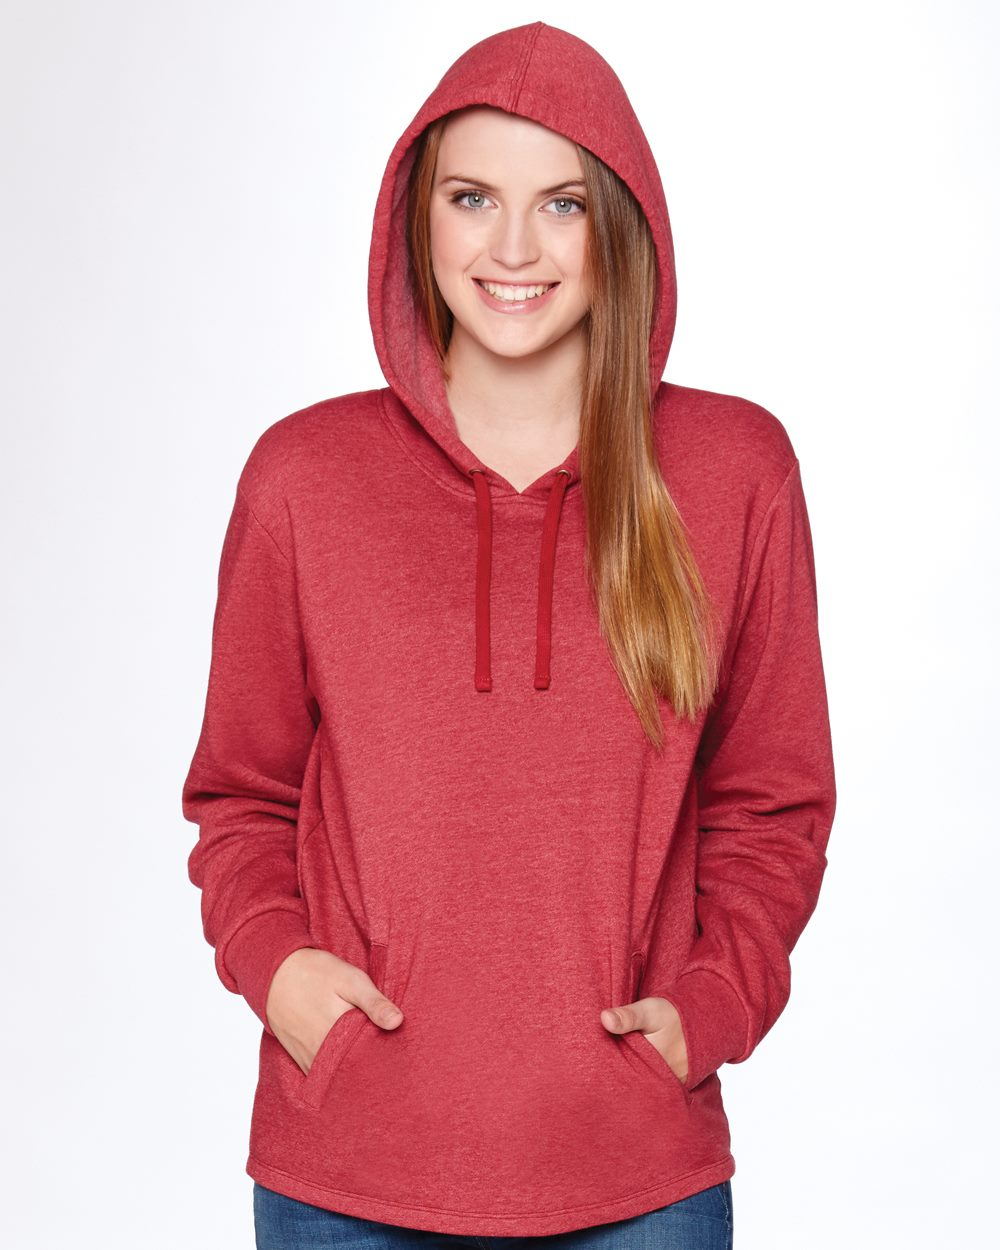 Next Level 9300 - Unisex PCH Hooded Pullover Sweatshirt